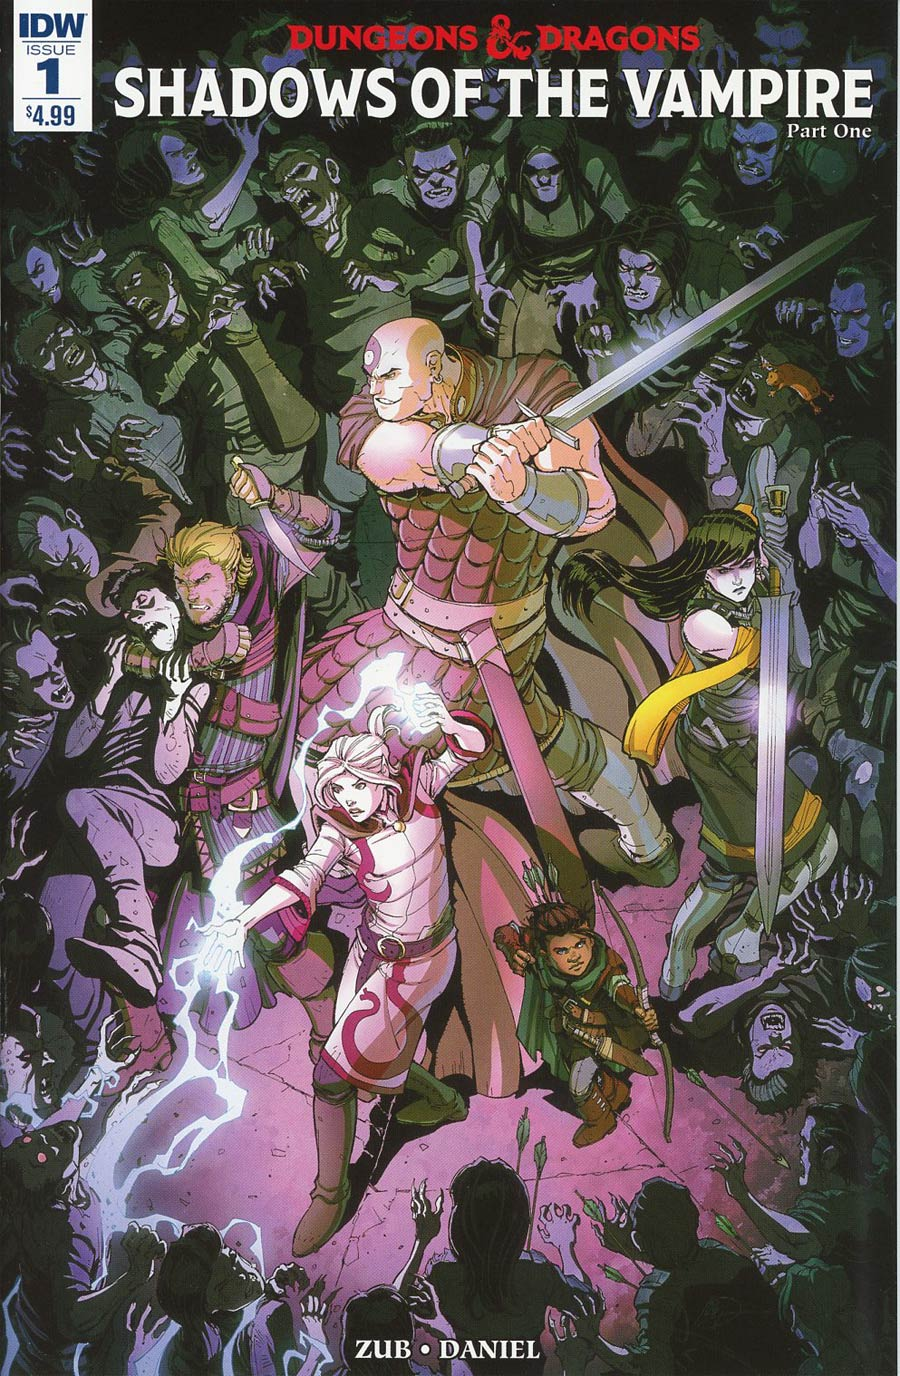 Dungeons & Dragons Vol 2 #1 Cover A Regular Max Dunbar Cover